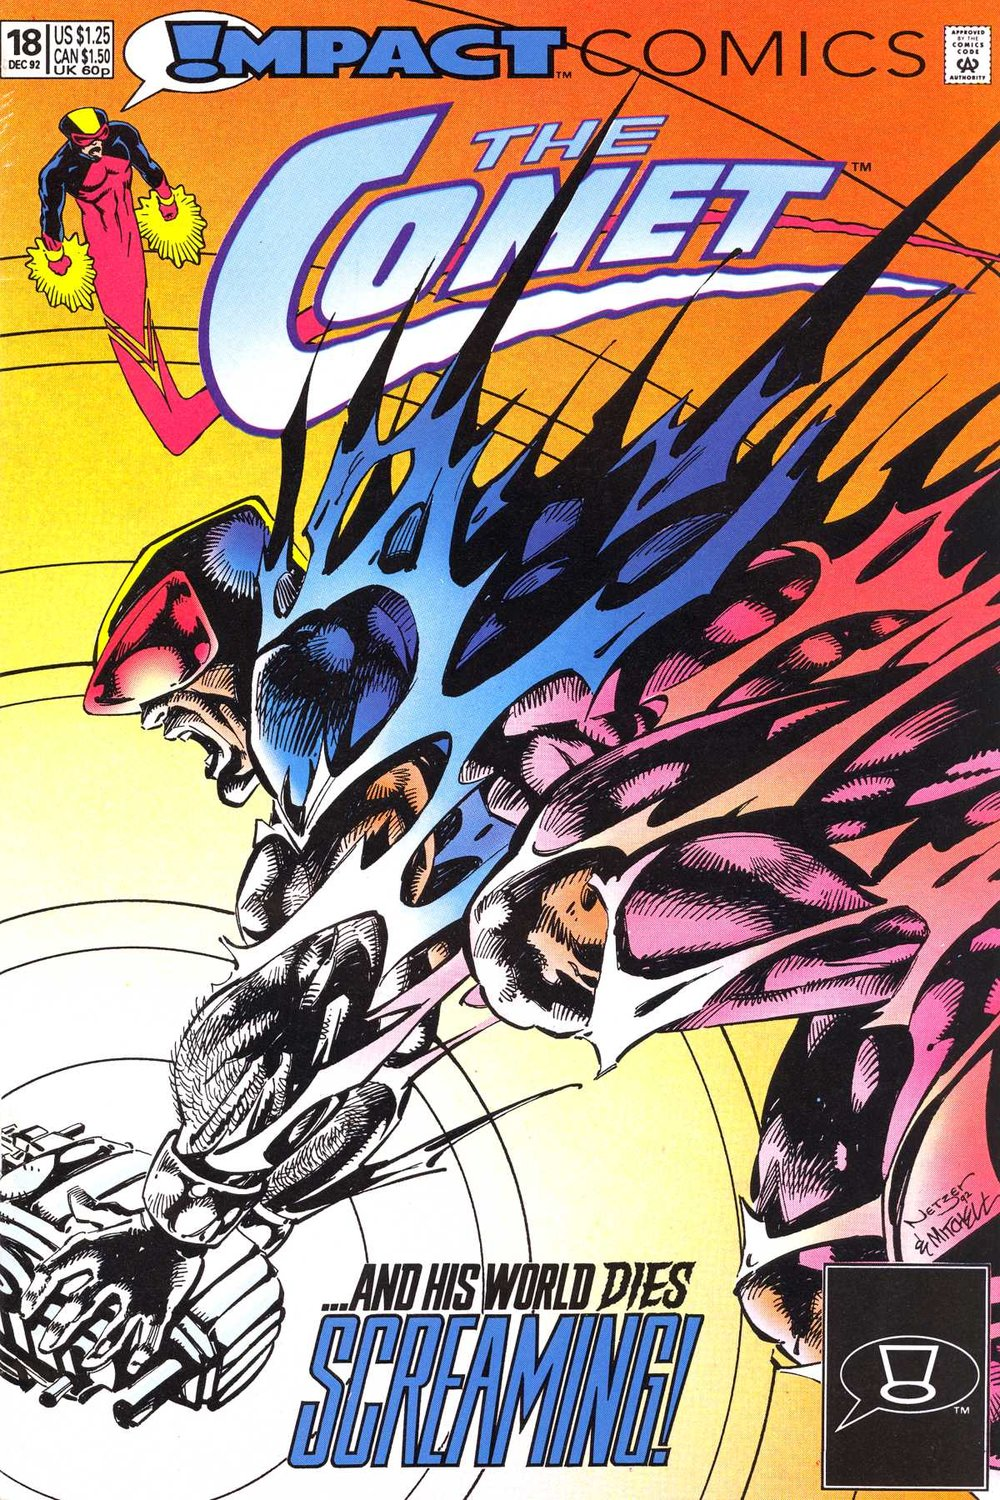 The Comet (1991) #18, cover penciled by Mike Netzer & inked by Steve Mitchell.